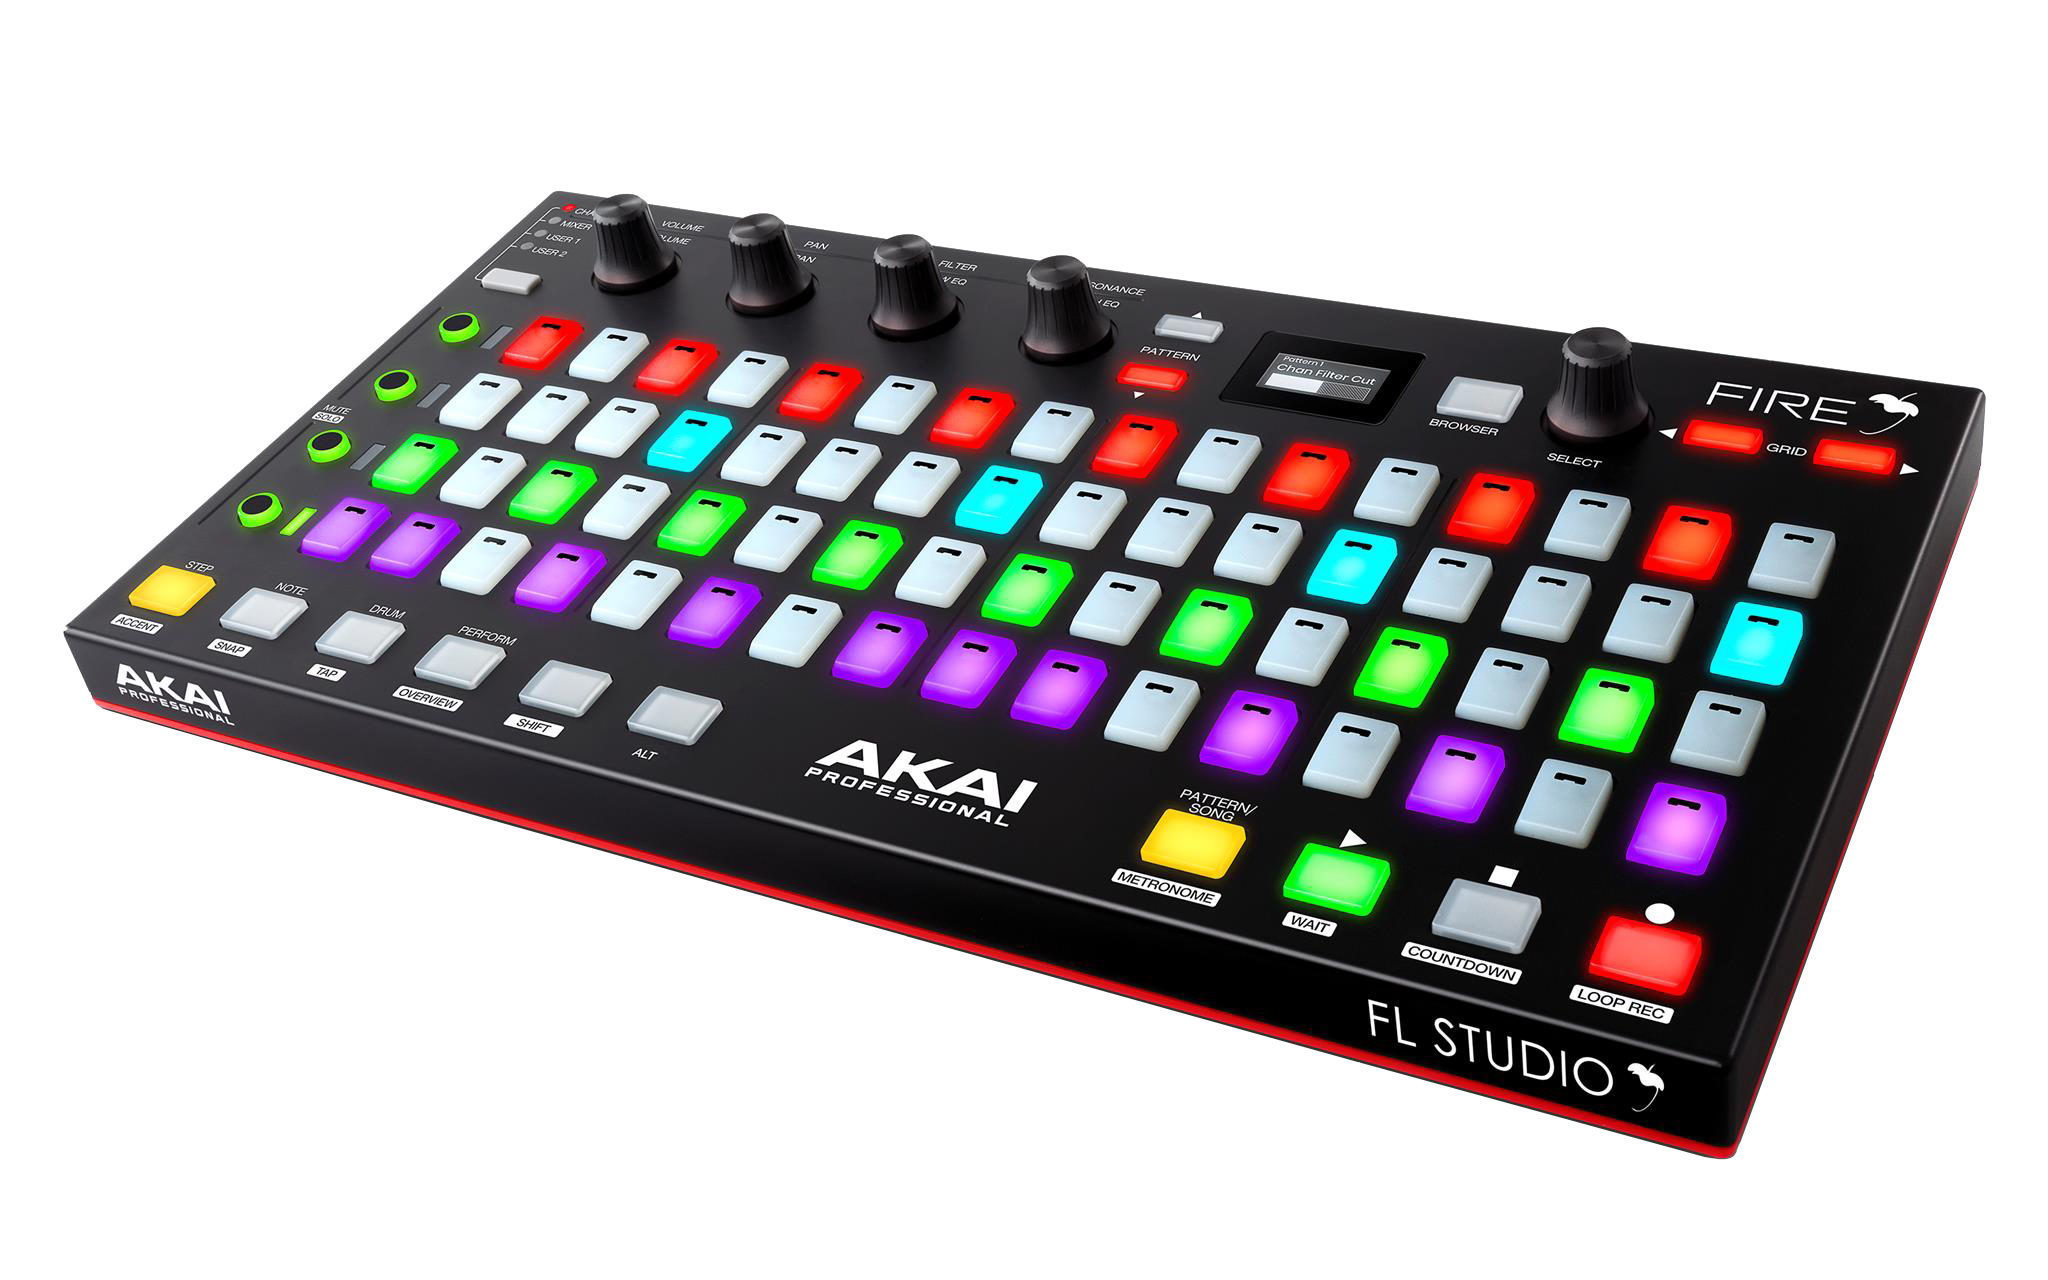 Akai Pro Fire - Frequently Asked Questions | Akai Professional